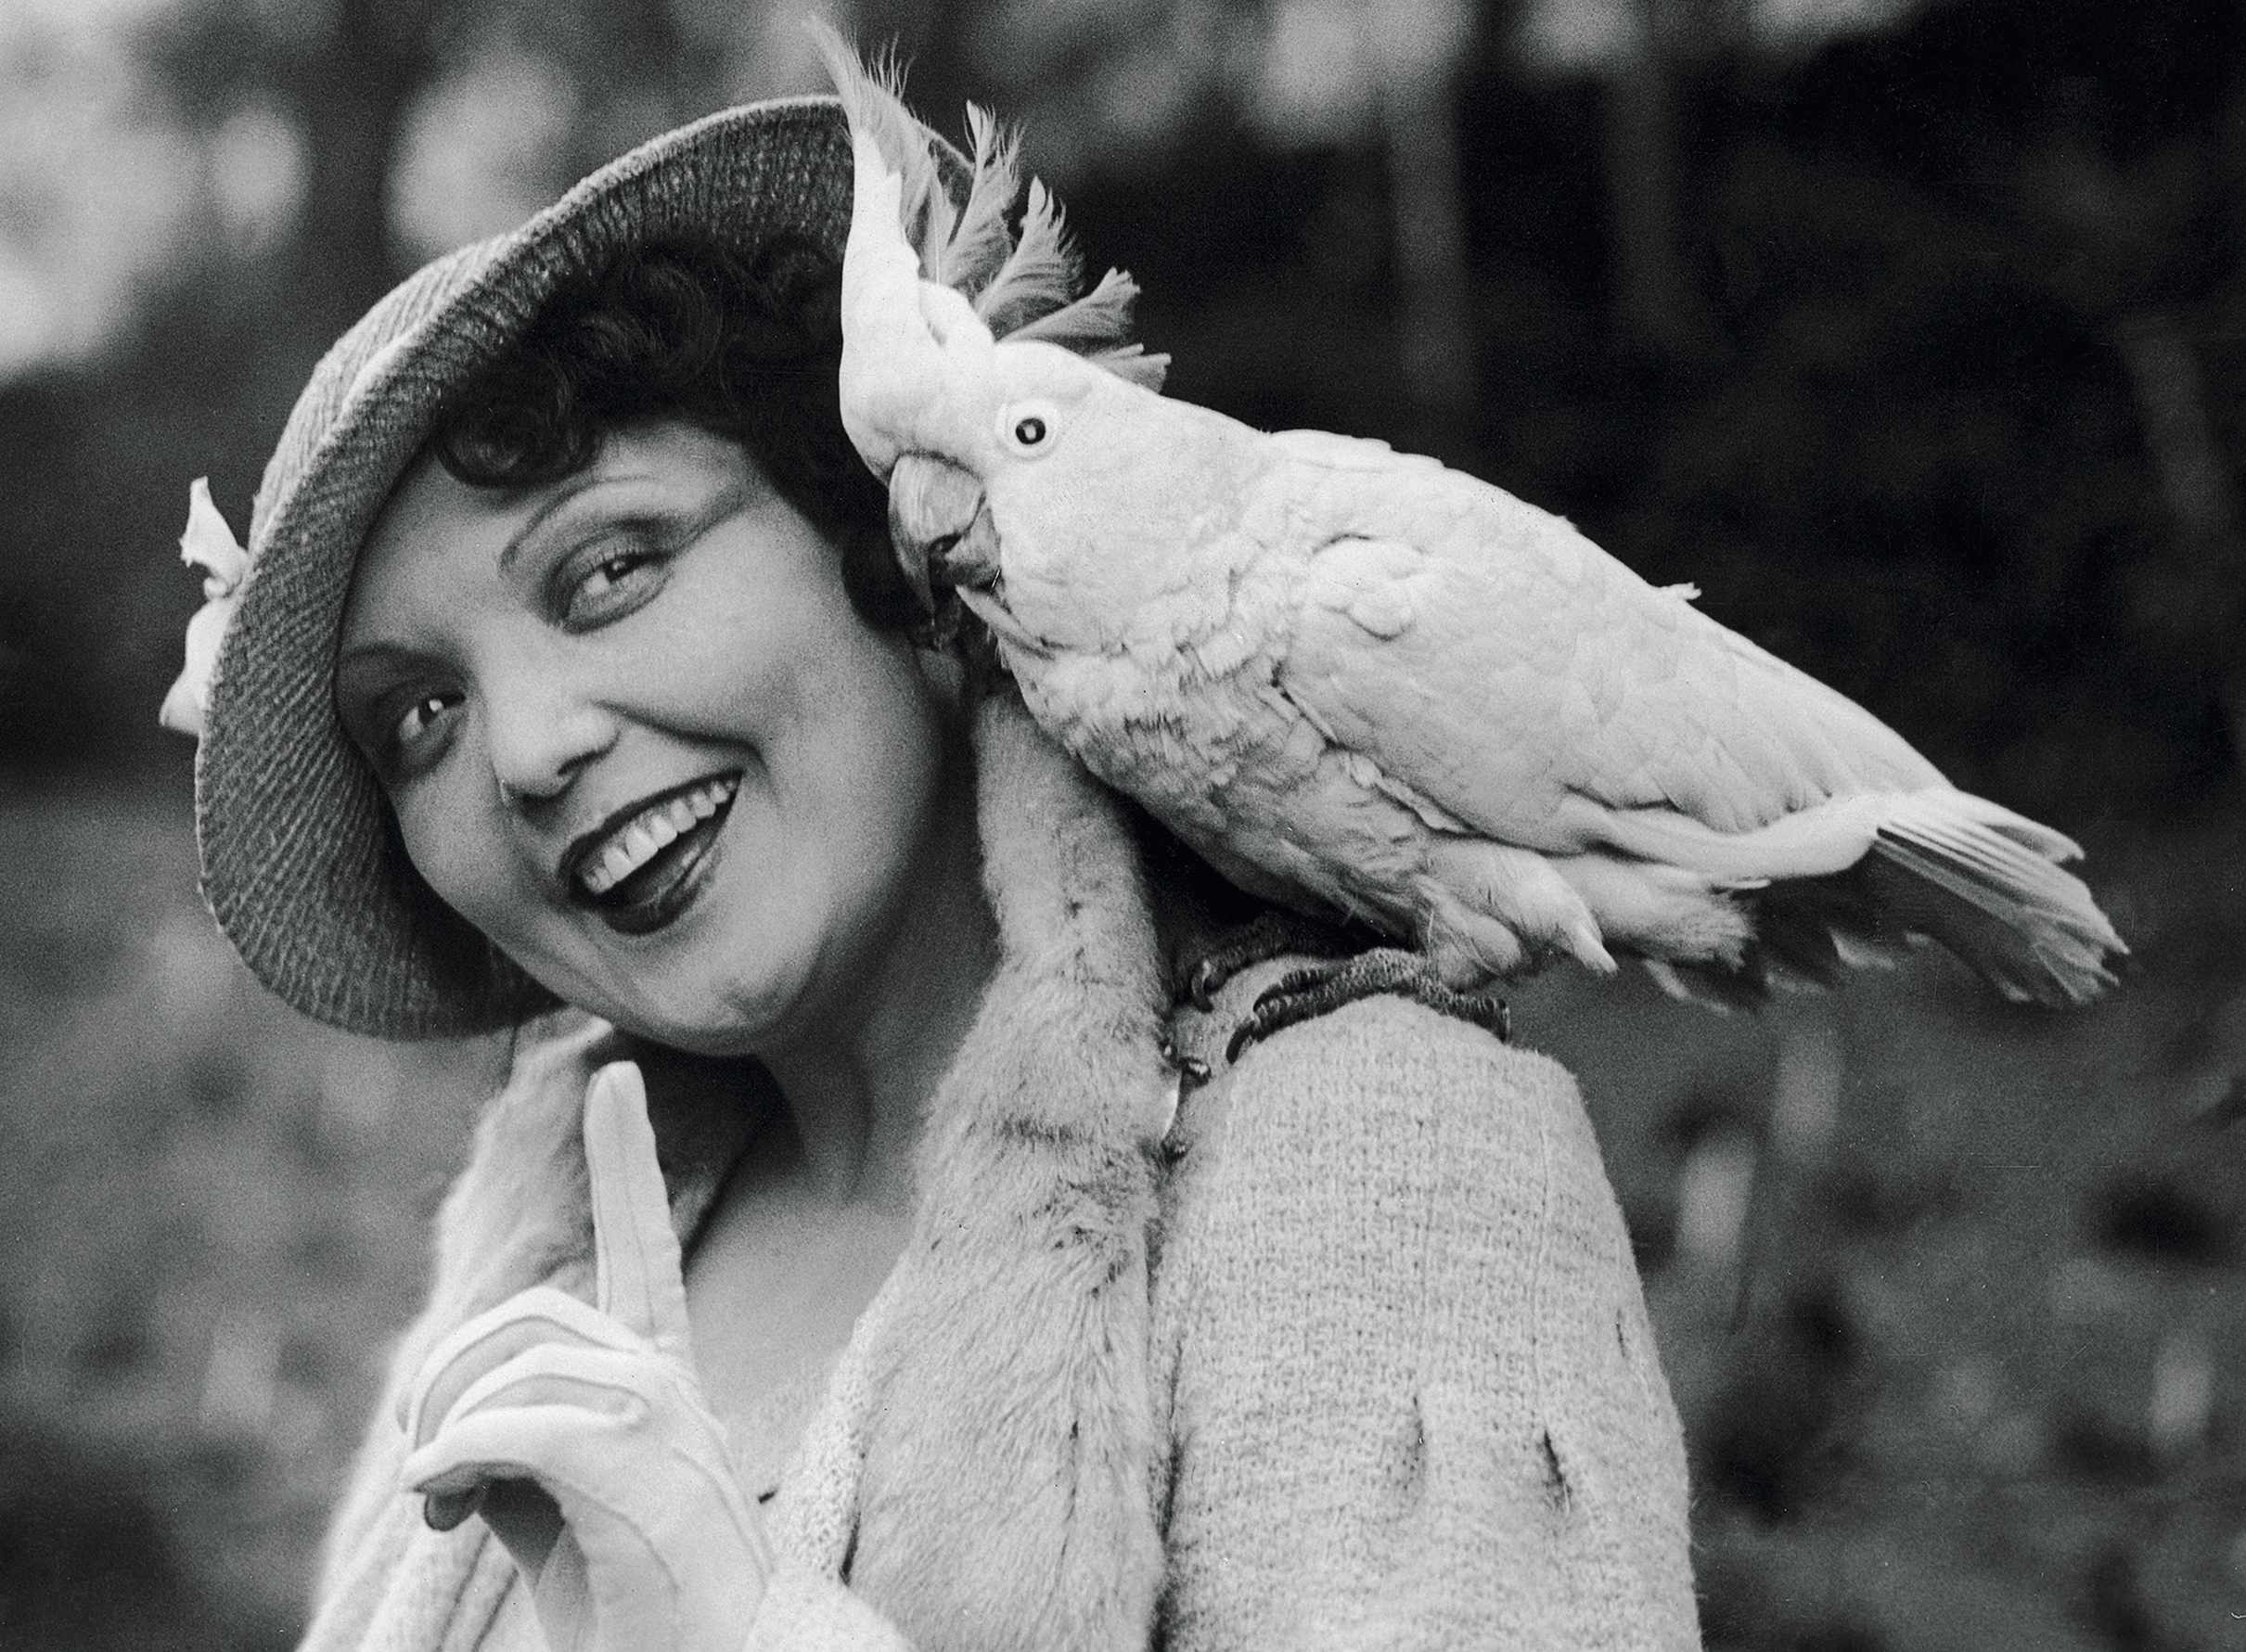 Carnival of the animals: photos of classical musicians who loved animals